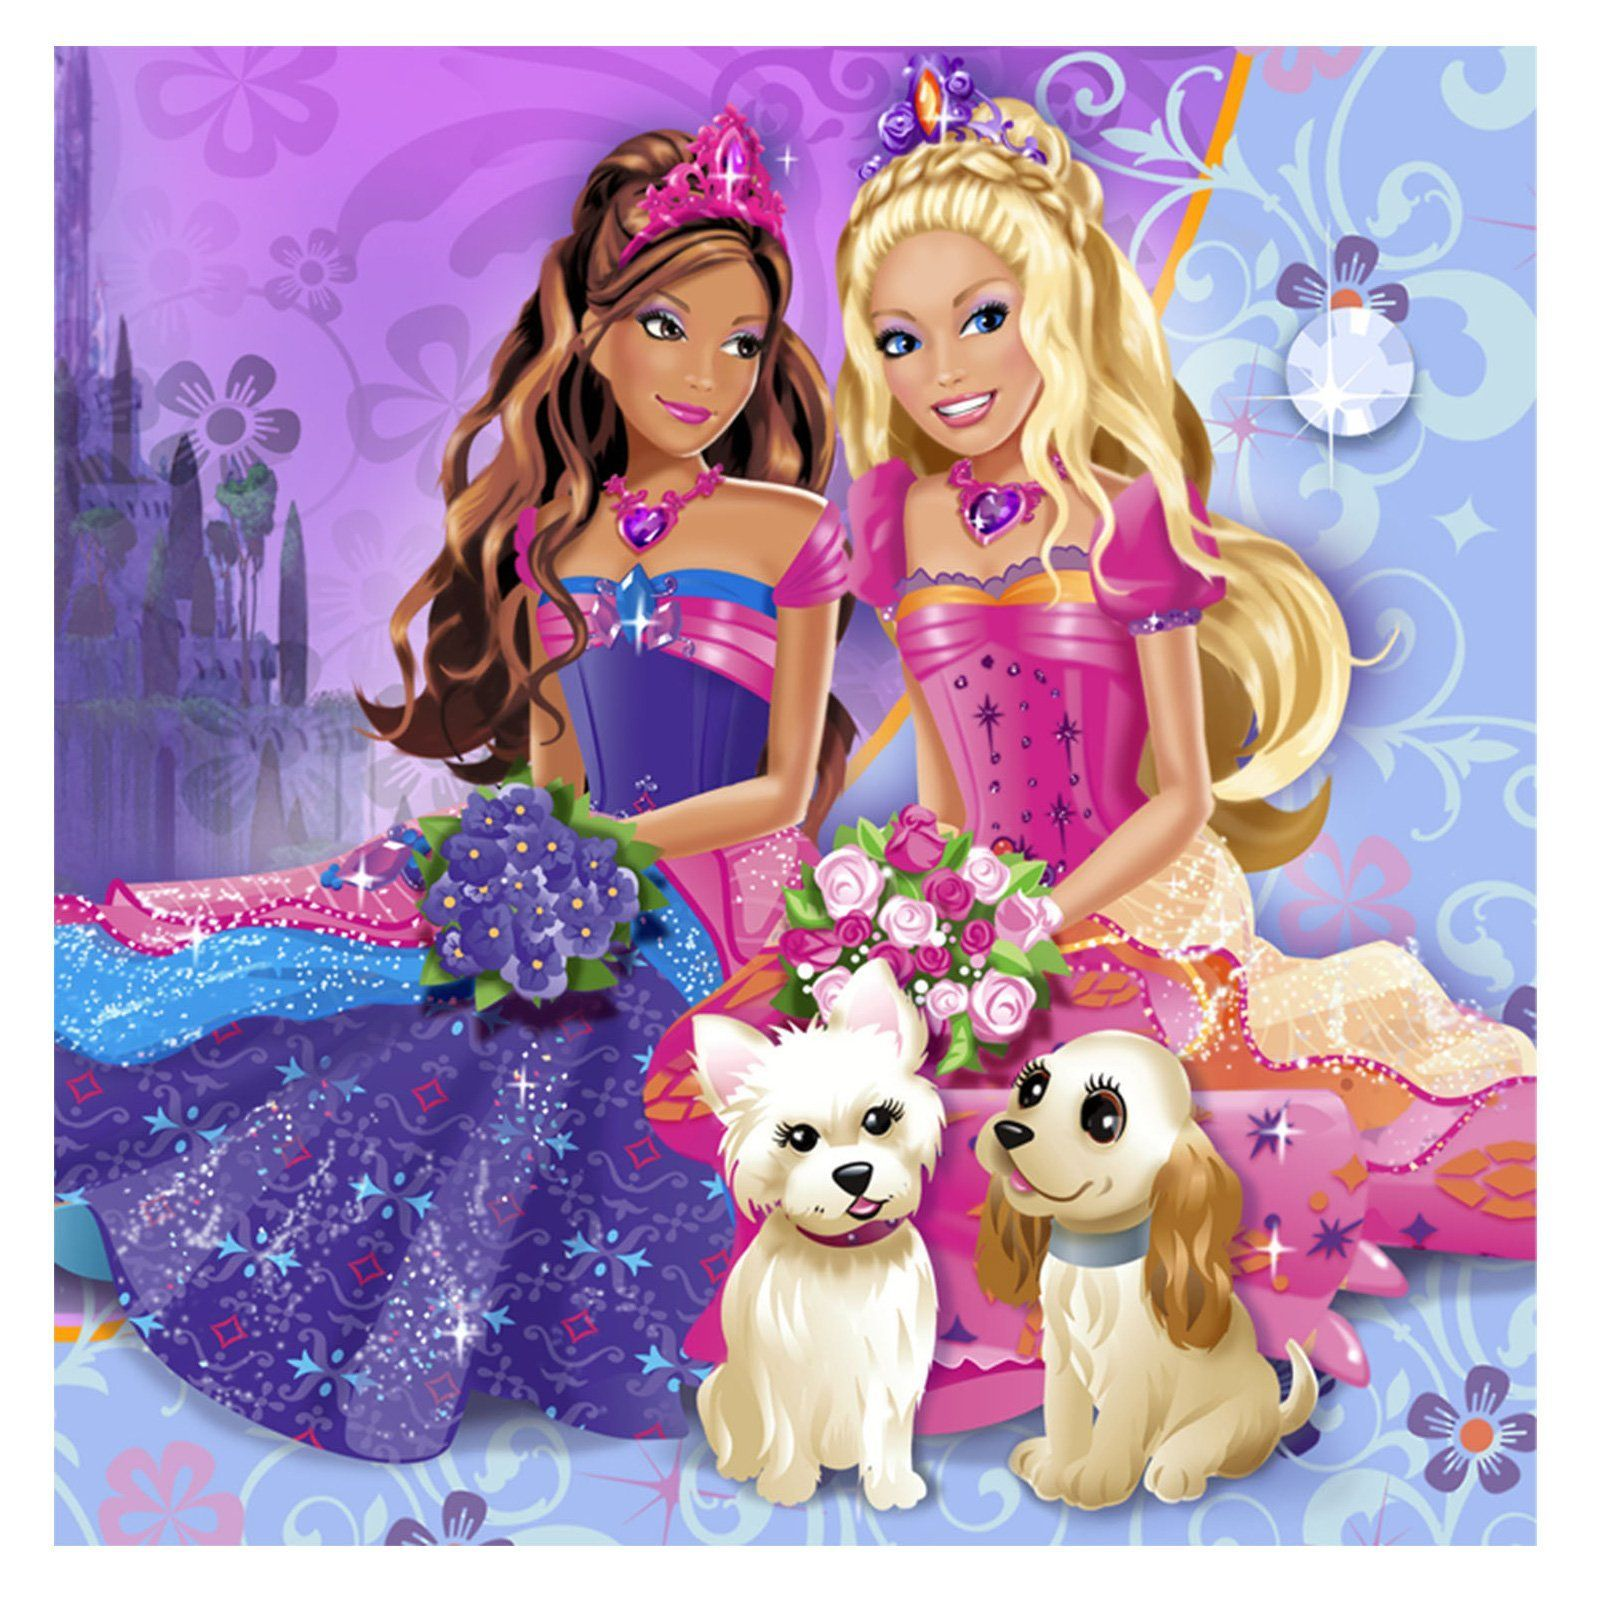 Popular Wallpaper Mobile Barbie - 26acca500fc761741d5ebe79d21a4dc5  Pictures_41885.jpg